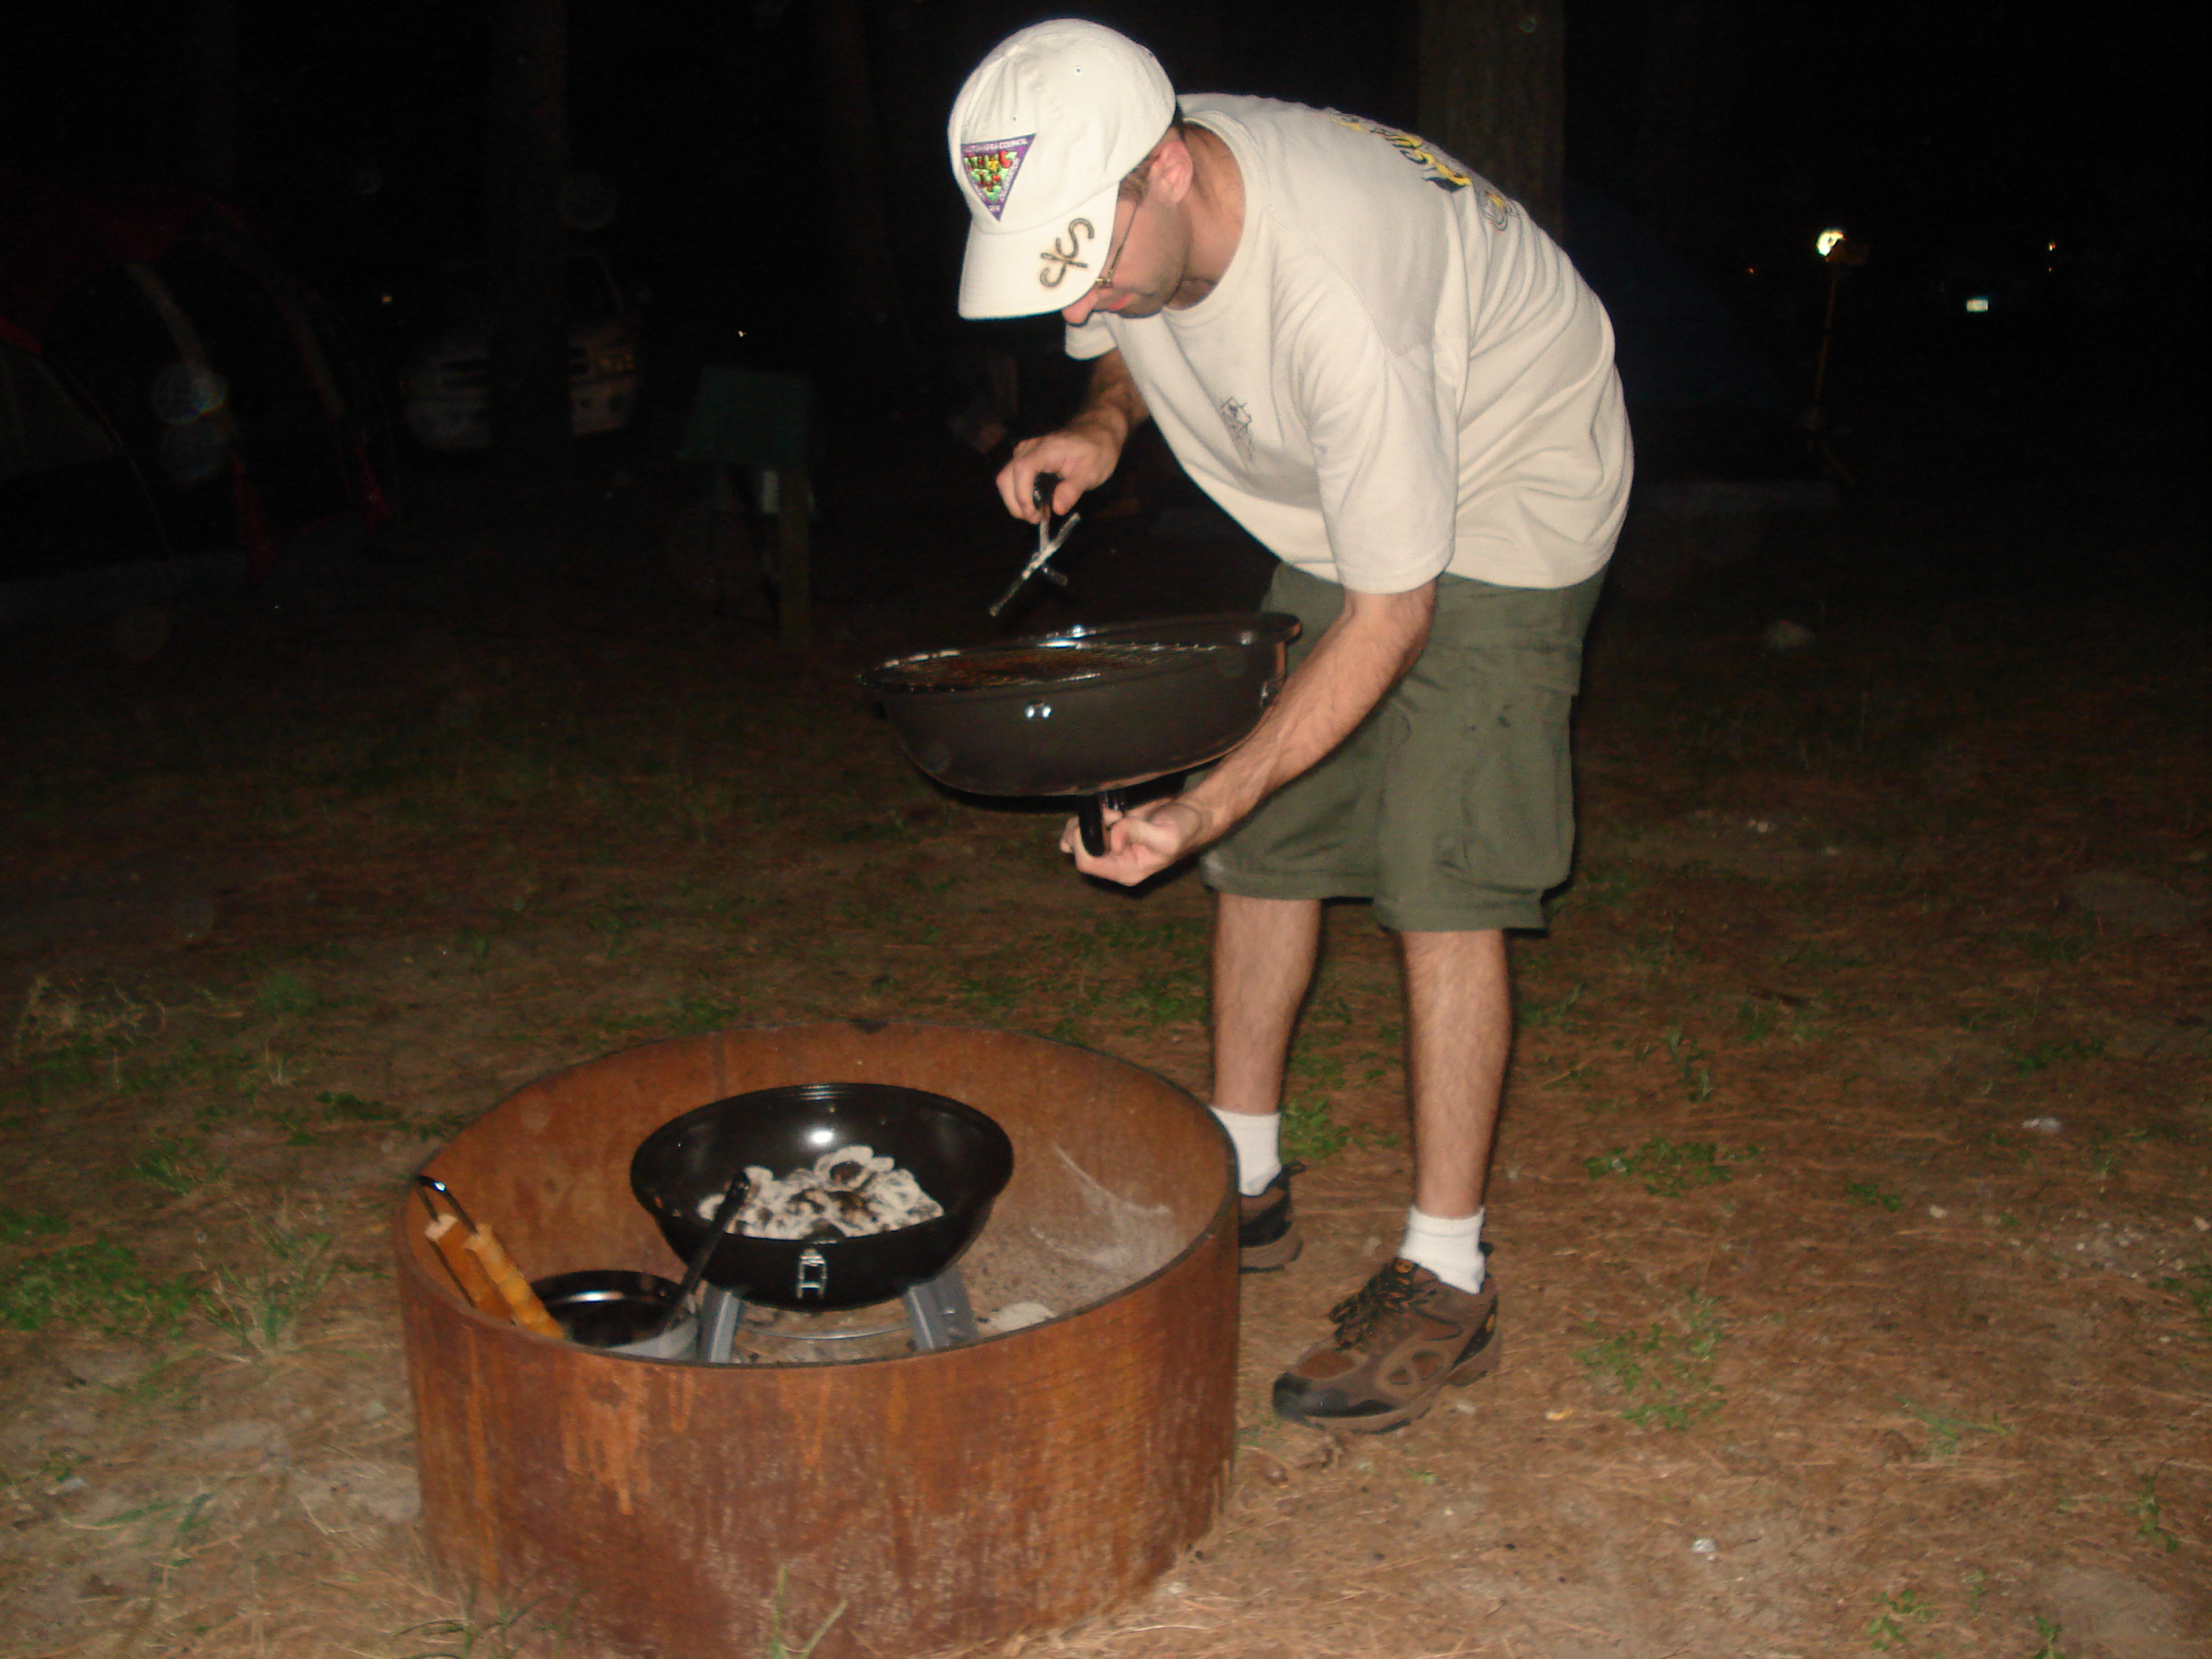 Easy food allergy friendly dutch oven camping recipes for What to cook in a dutch oven camping